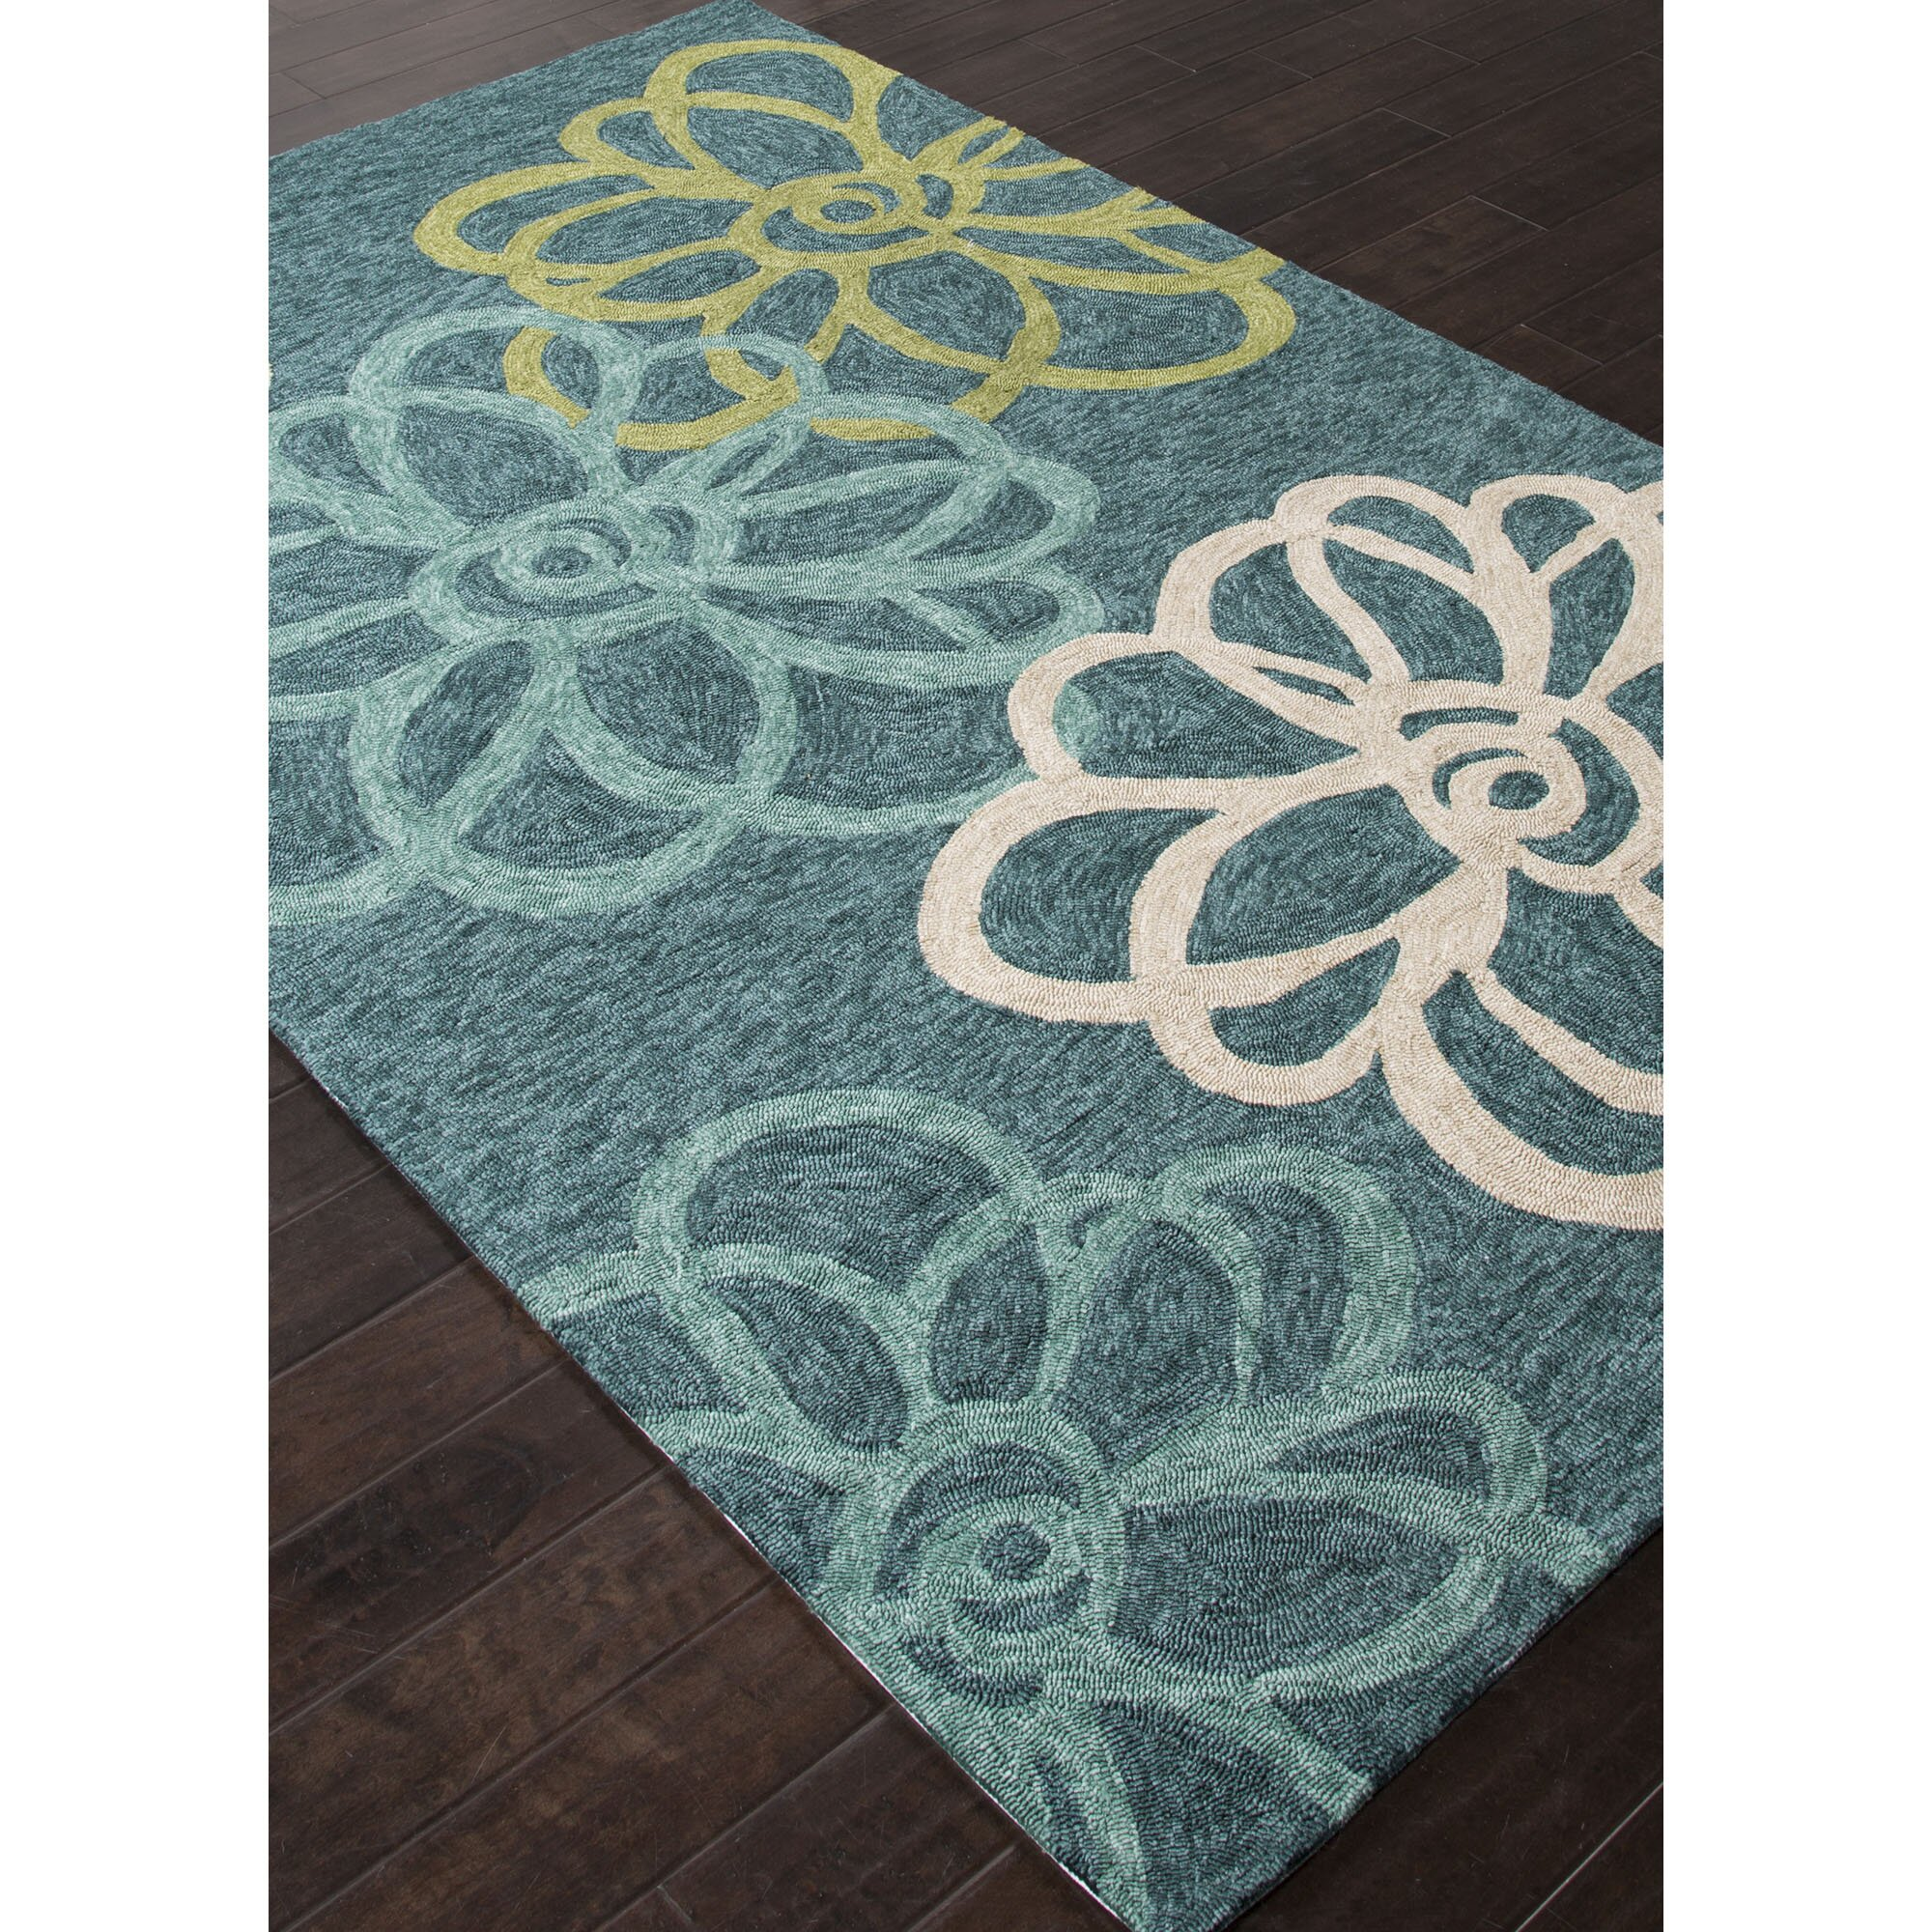 JaipurLiving Catalina Blue / Green Floral Indoor / Outdoor